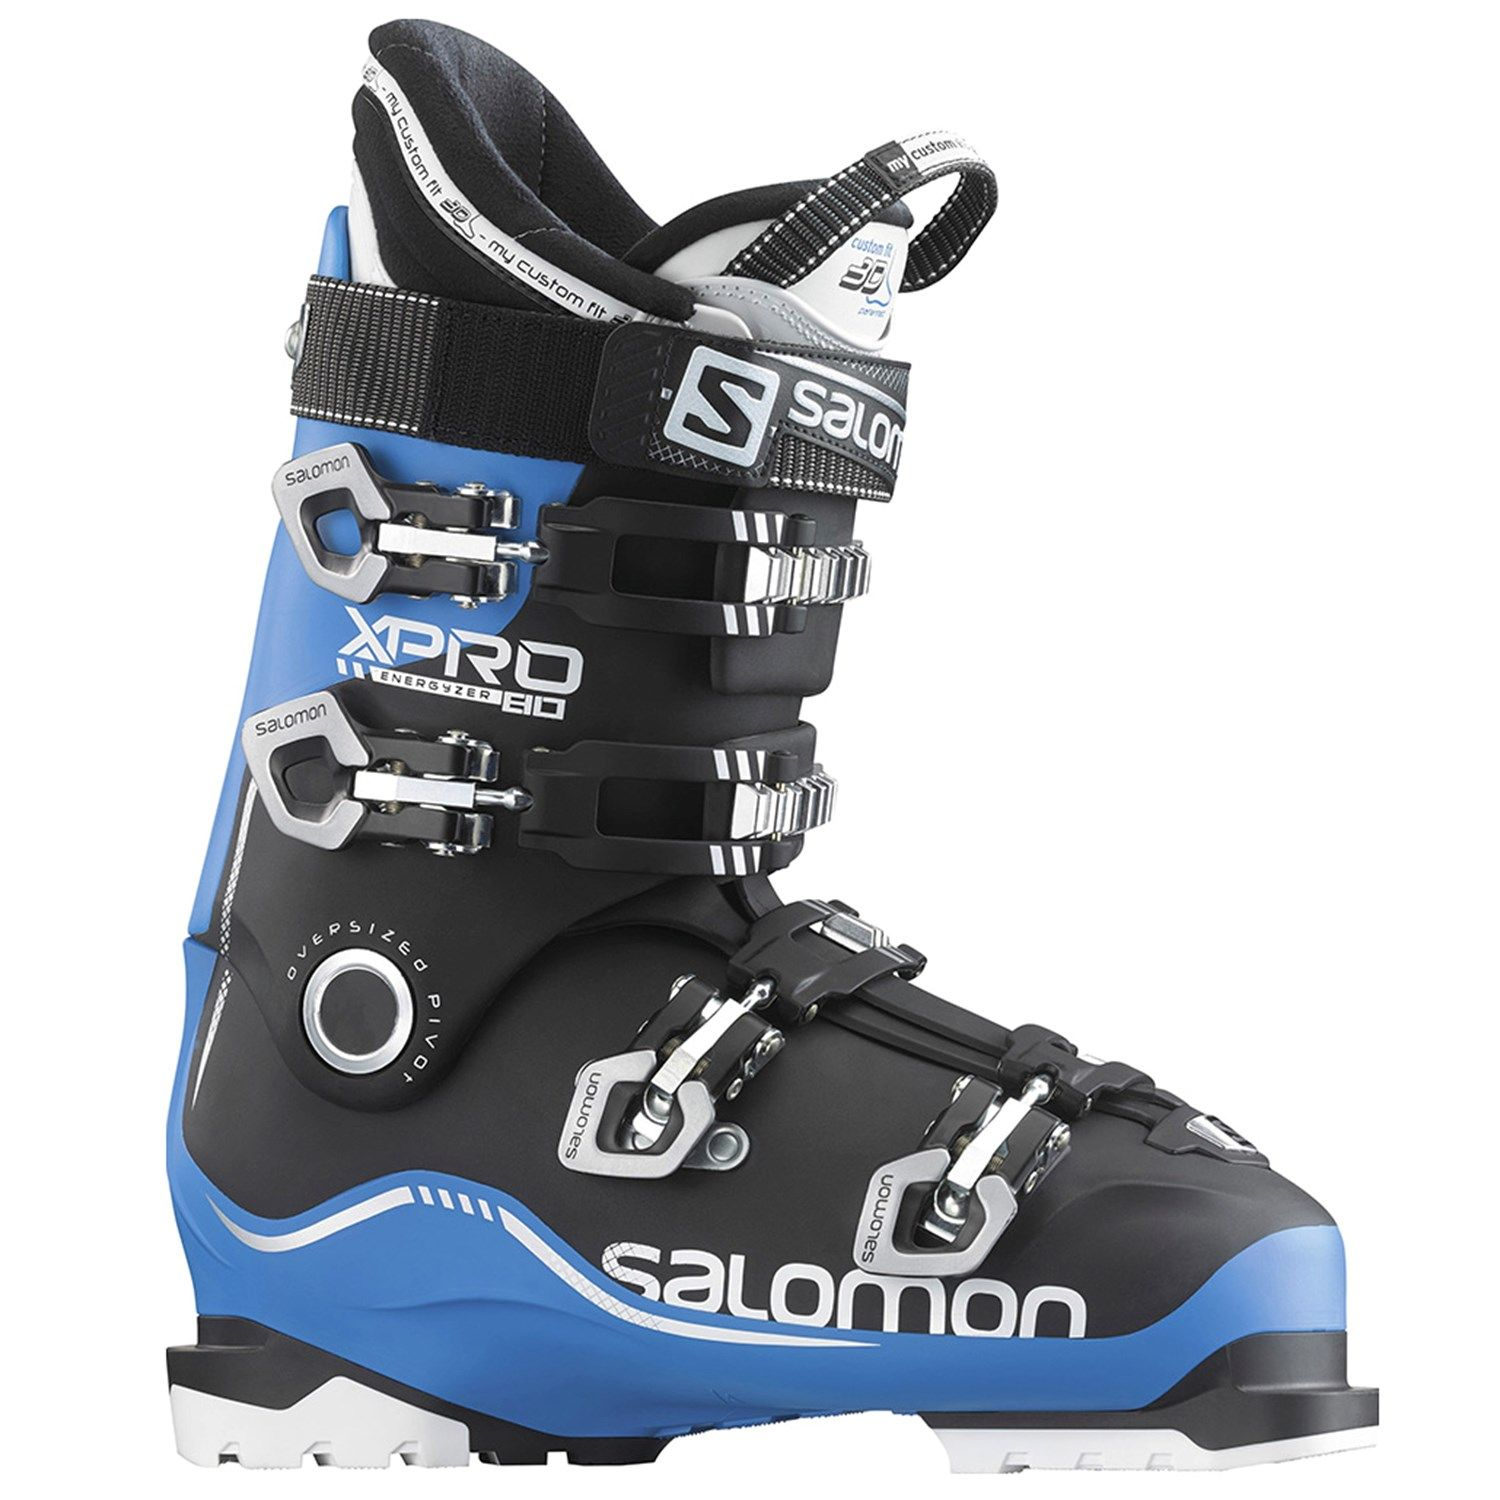 Salomon Ski Boots Ideal For Men And Women As Well Thefashiontamer Com Salomon Ski Boots Boots Ski Boots